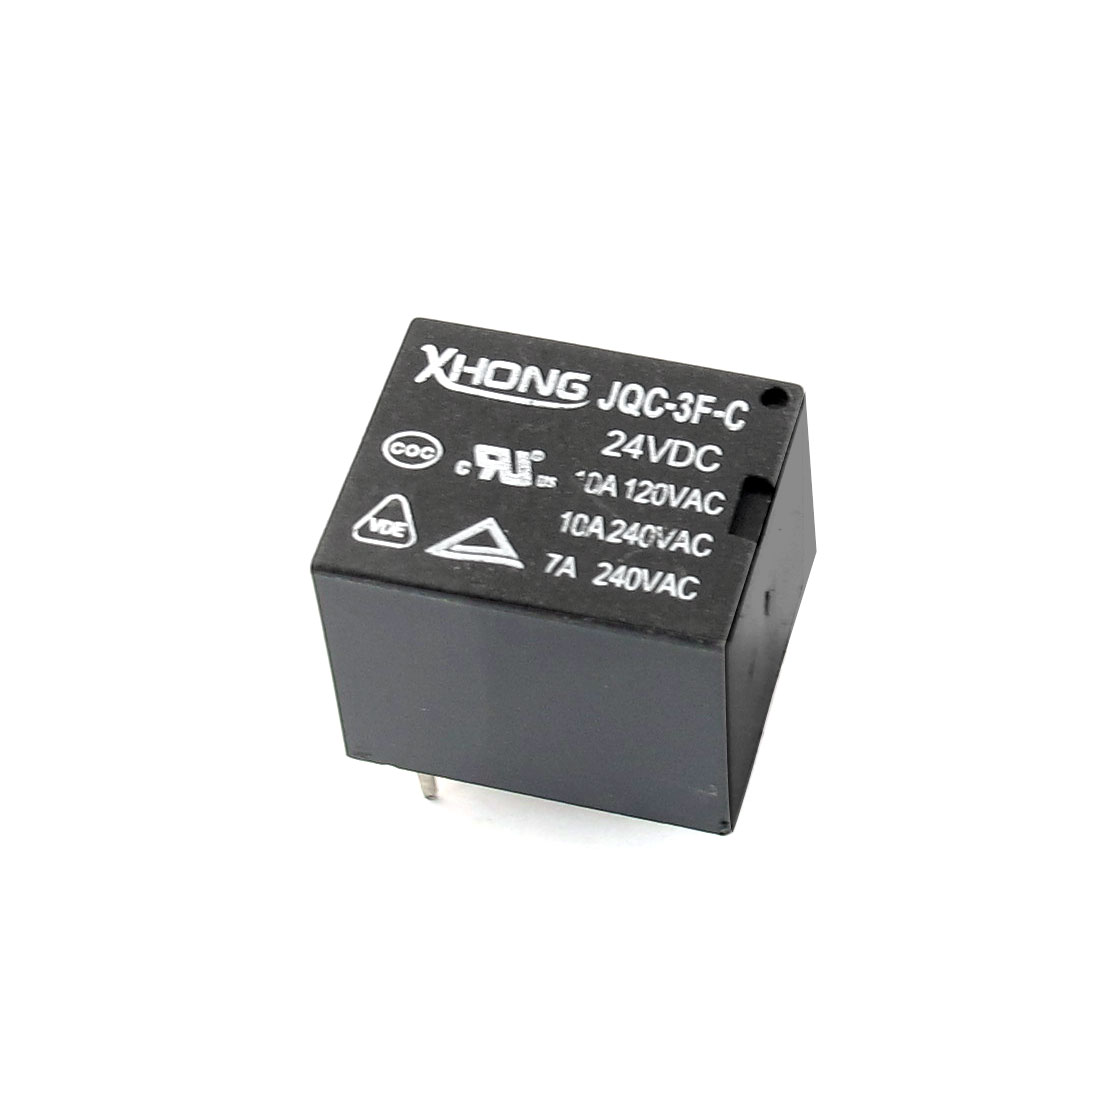 JQC-3F-C DC 24V Coil Voltage SPDT 5Pin Through Hole Mount Black Plastic General Purpose Square Power Relay